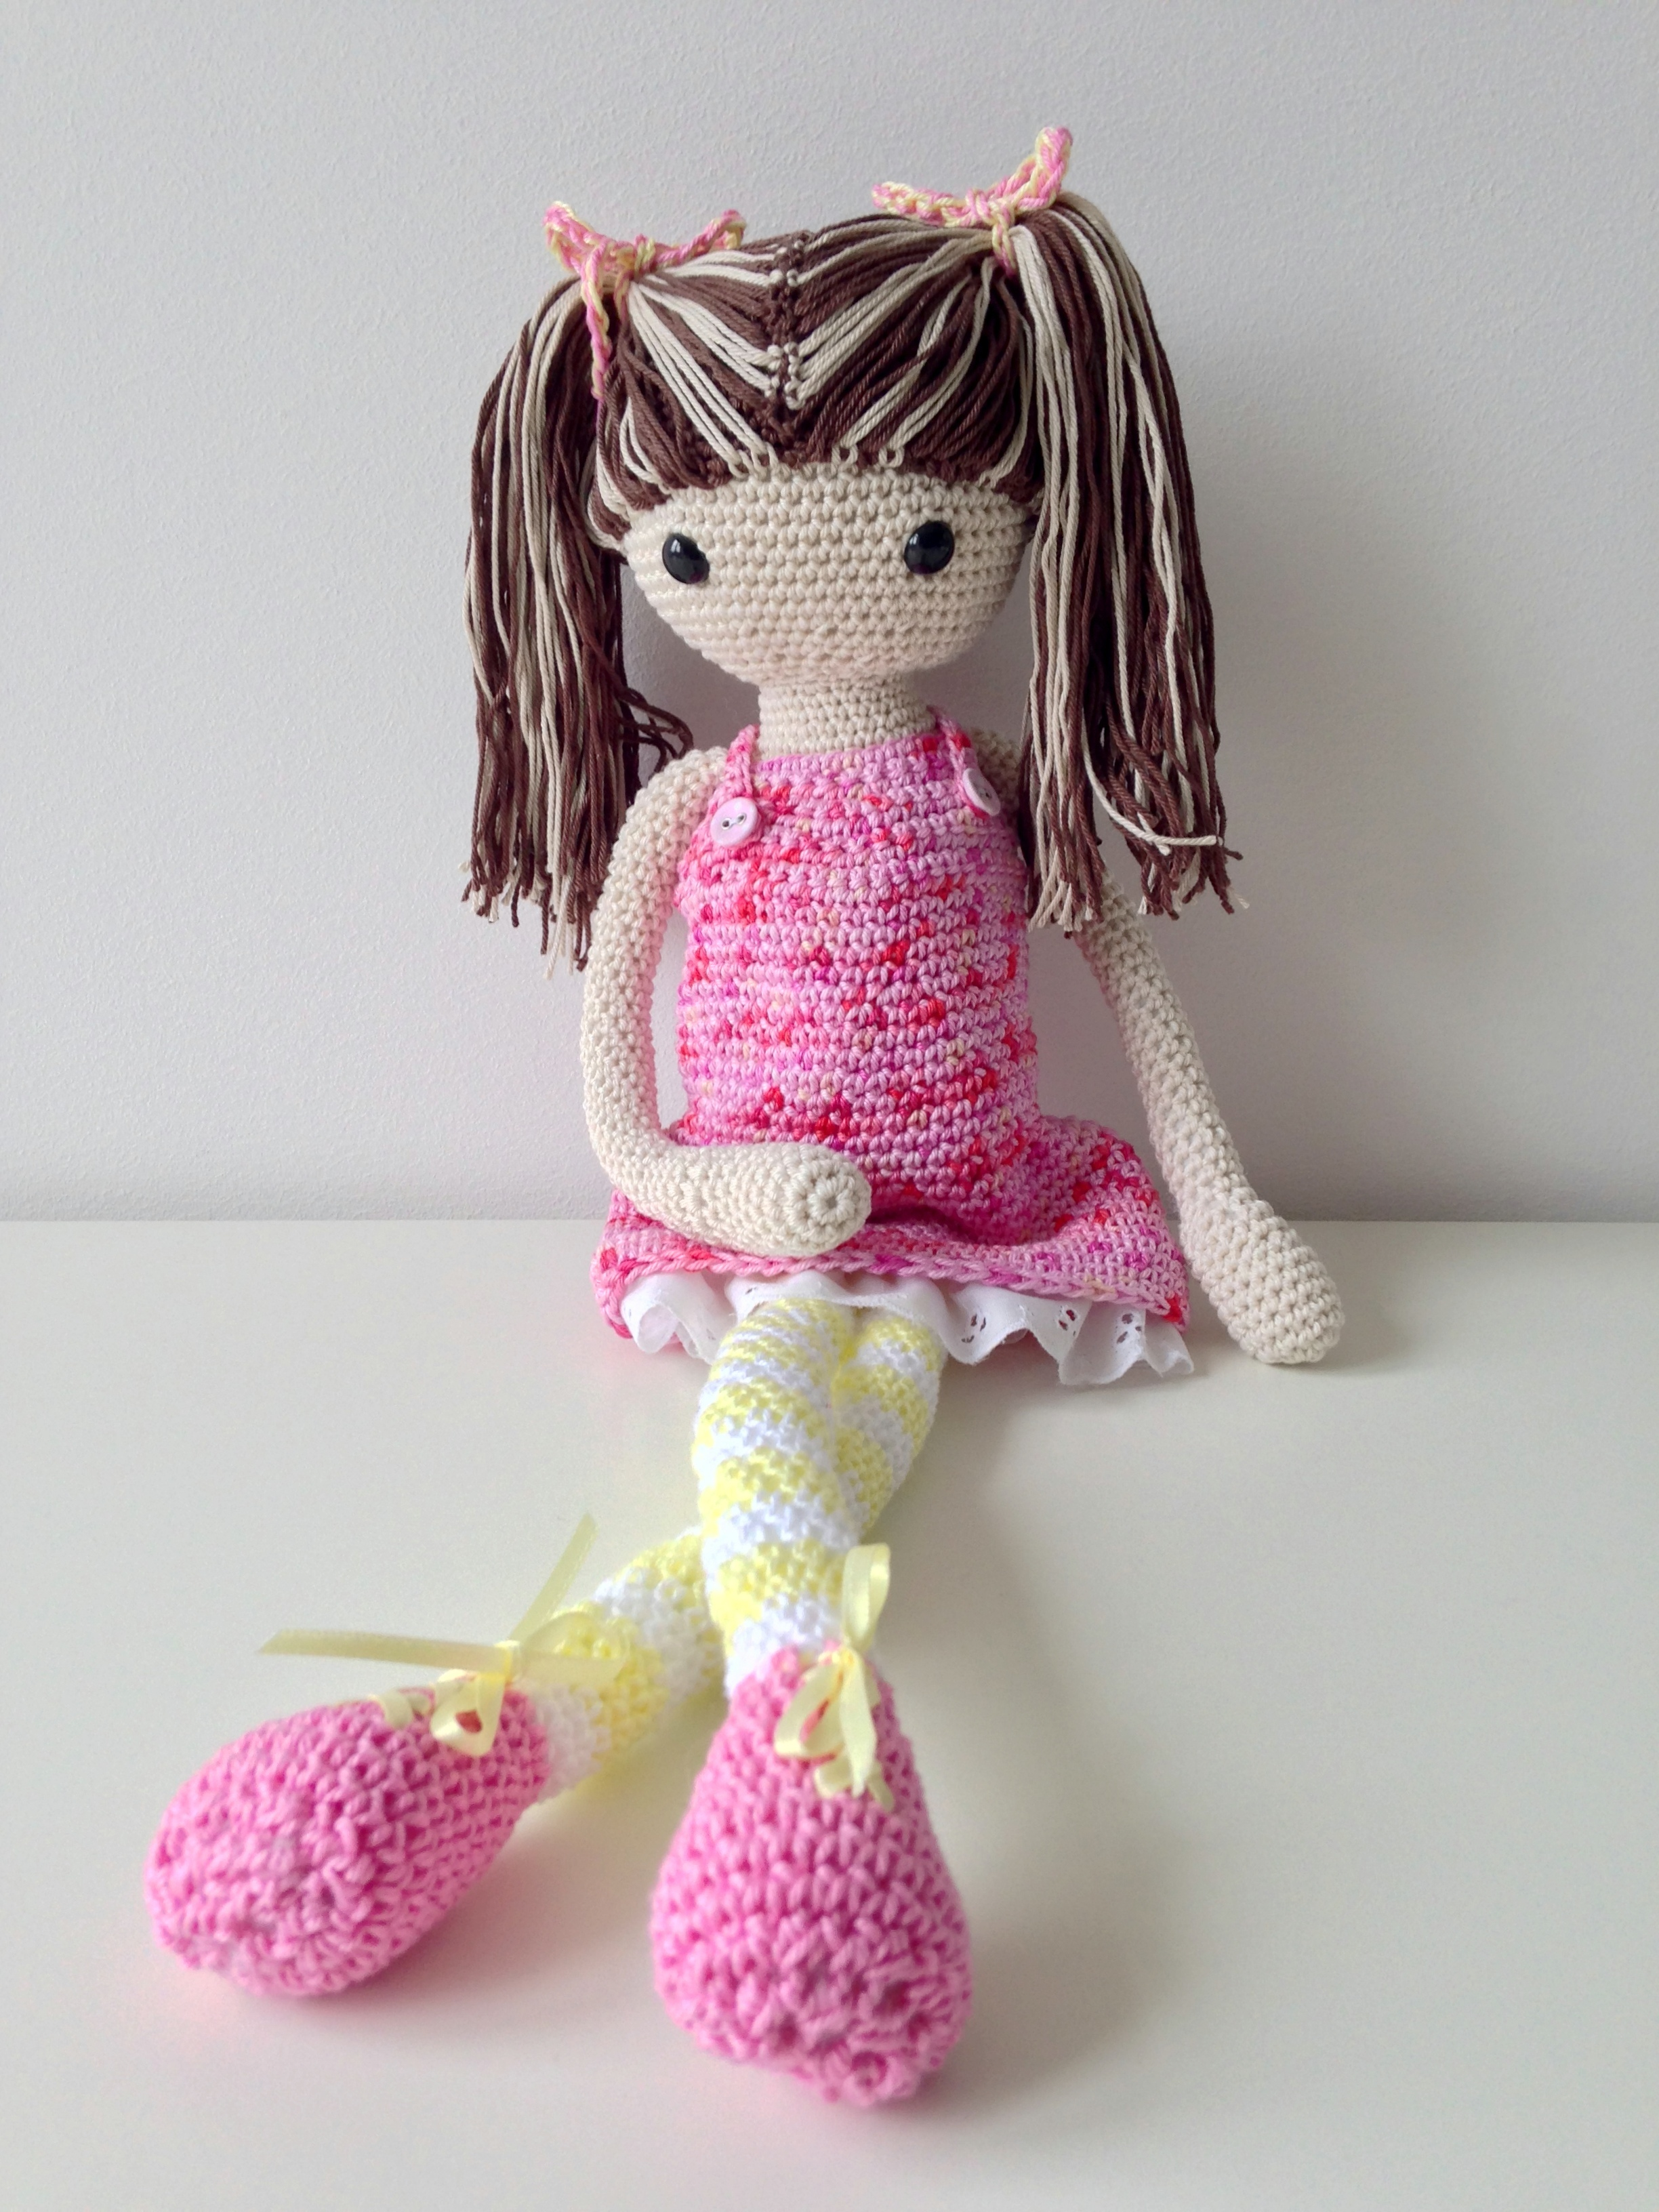 maRRose - CCC: Zoë doll